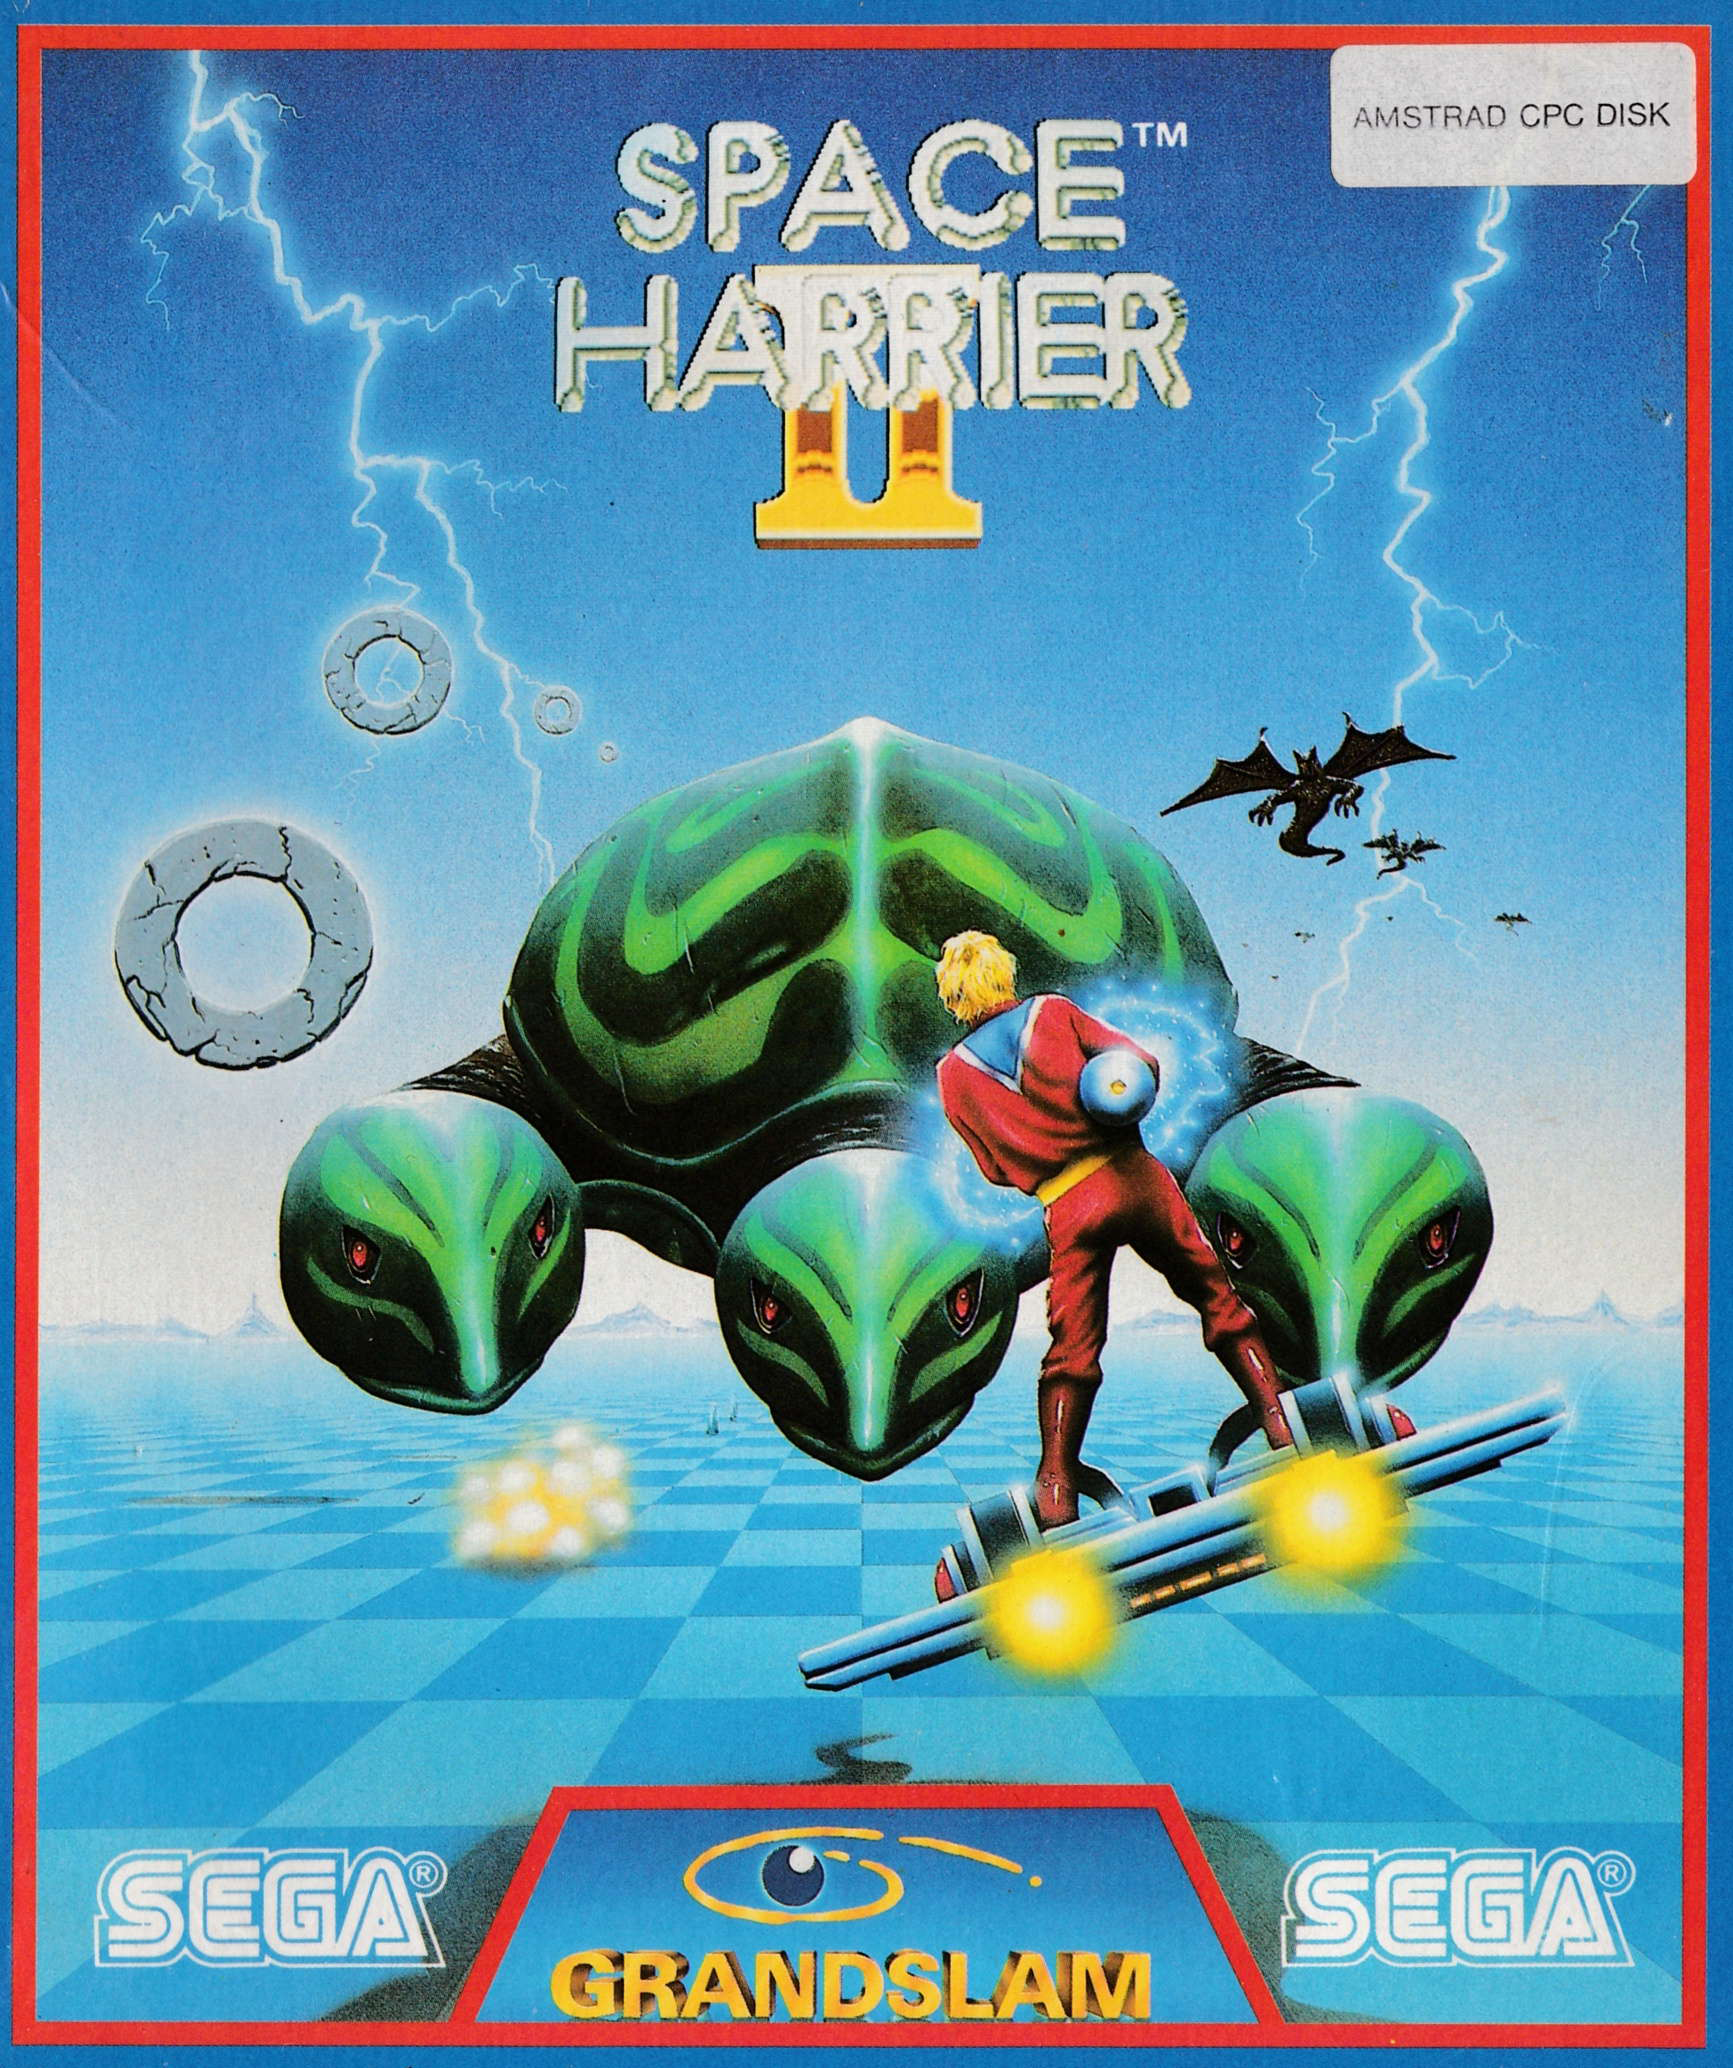 cover of the Amstrad CPC game Space Harrier II  by GameBase CPC